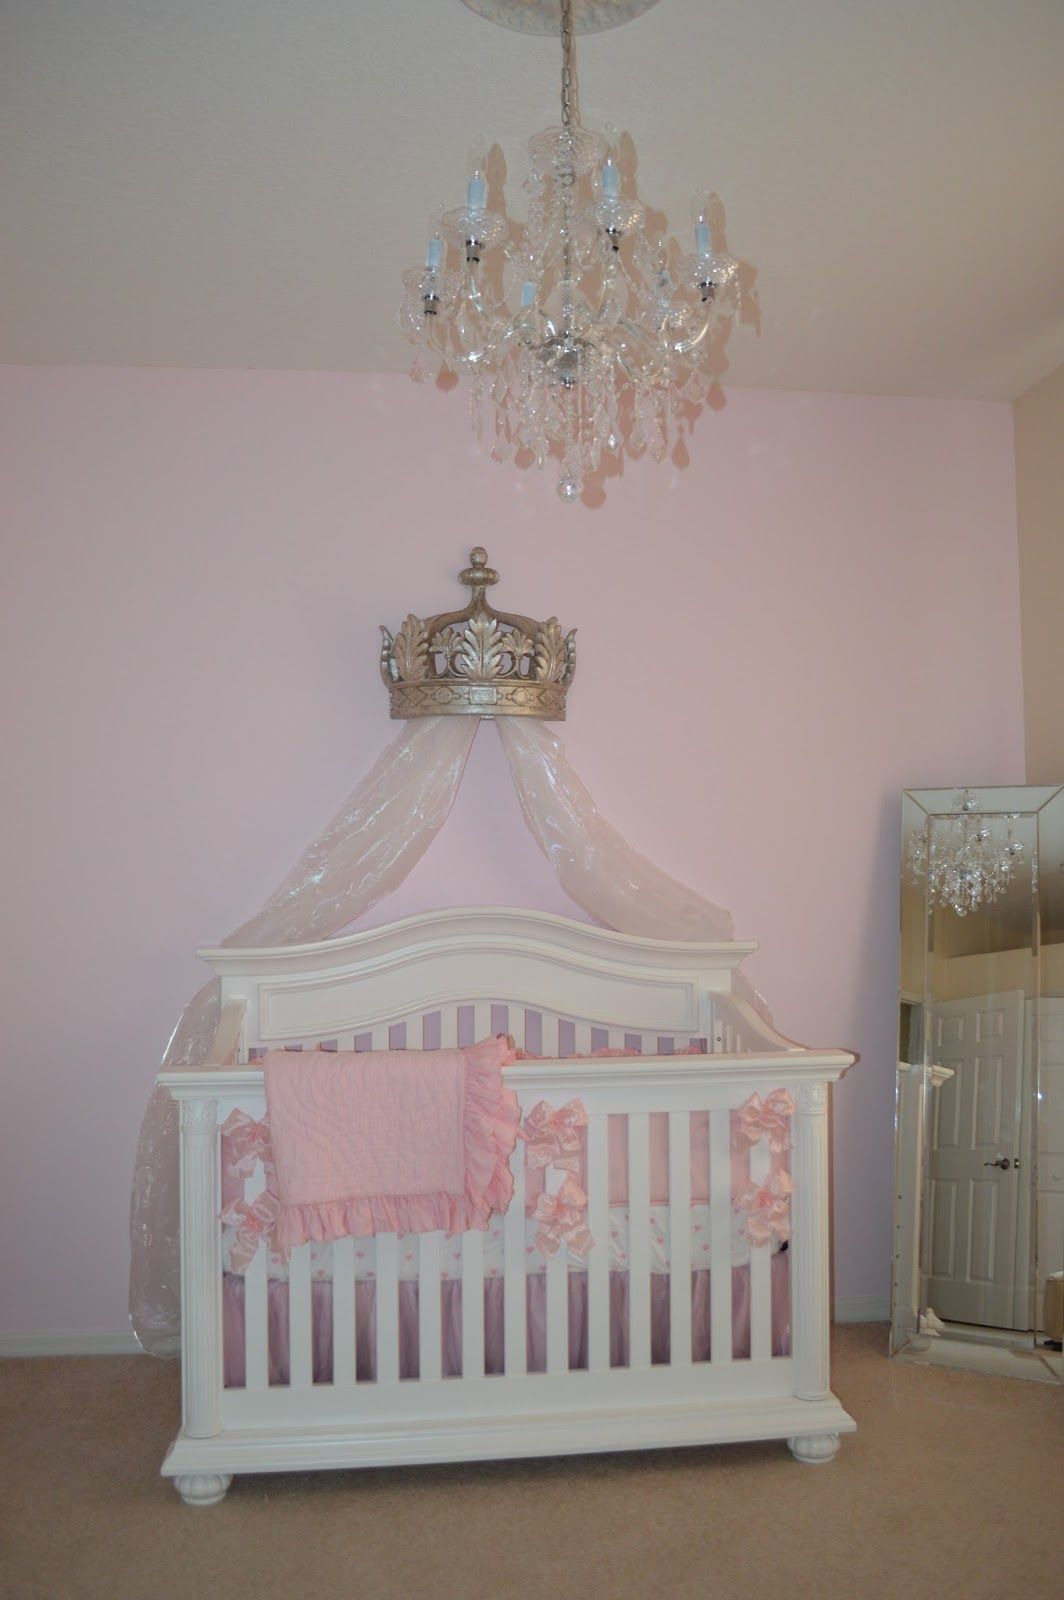 The Sweet Little Southern Charm By Tara Miller Pink Nursery Baby Crowns Pottery Barn Bedding Crib White Chandelier Canopy Mirror